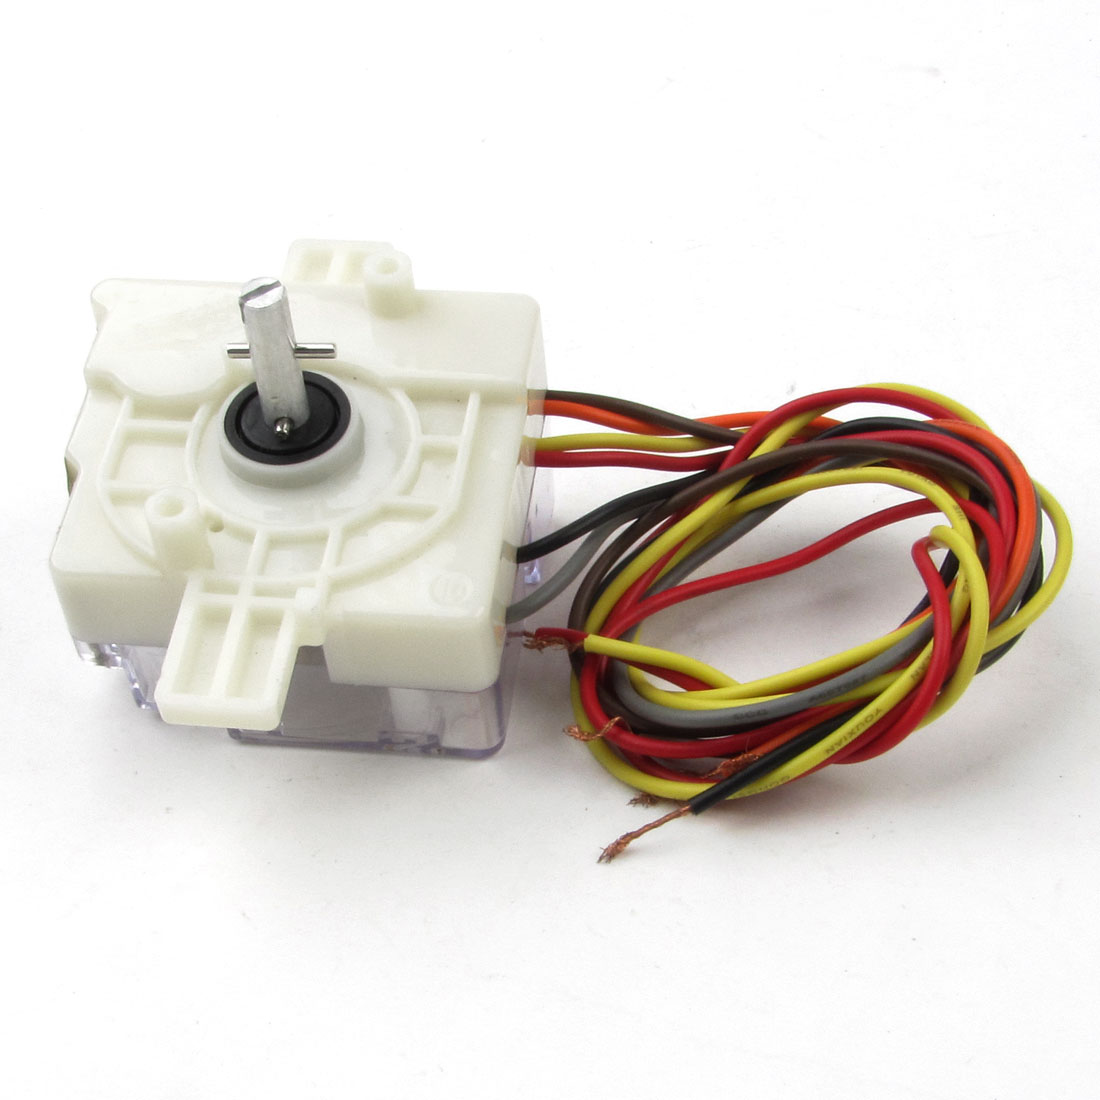 Off White WEILI Washing Machine Parts 6 Wires Timer Time Controller AC 250V 3A